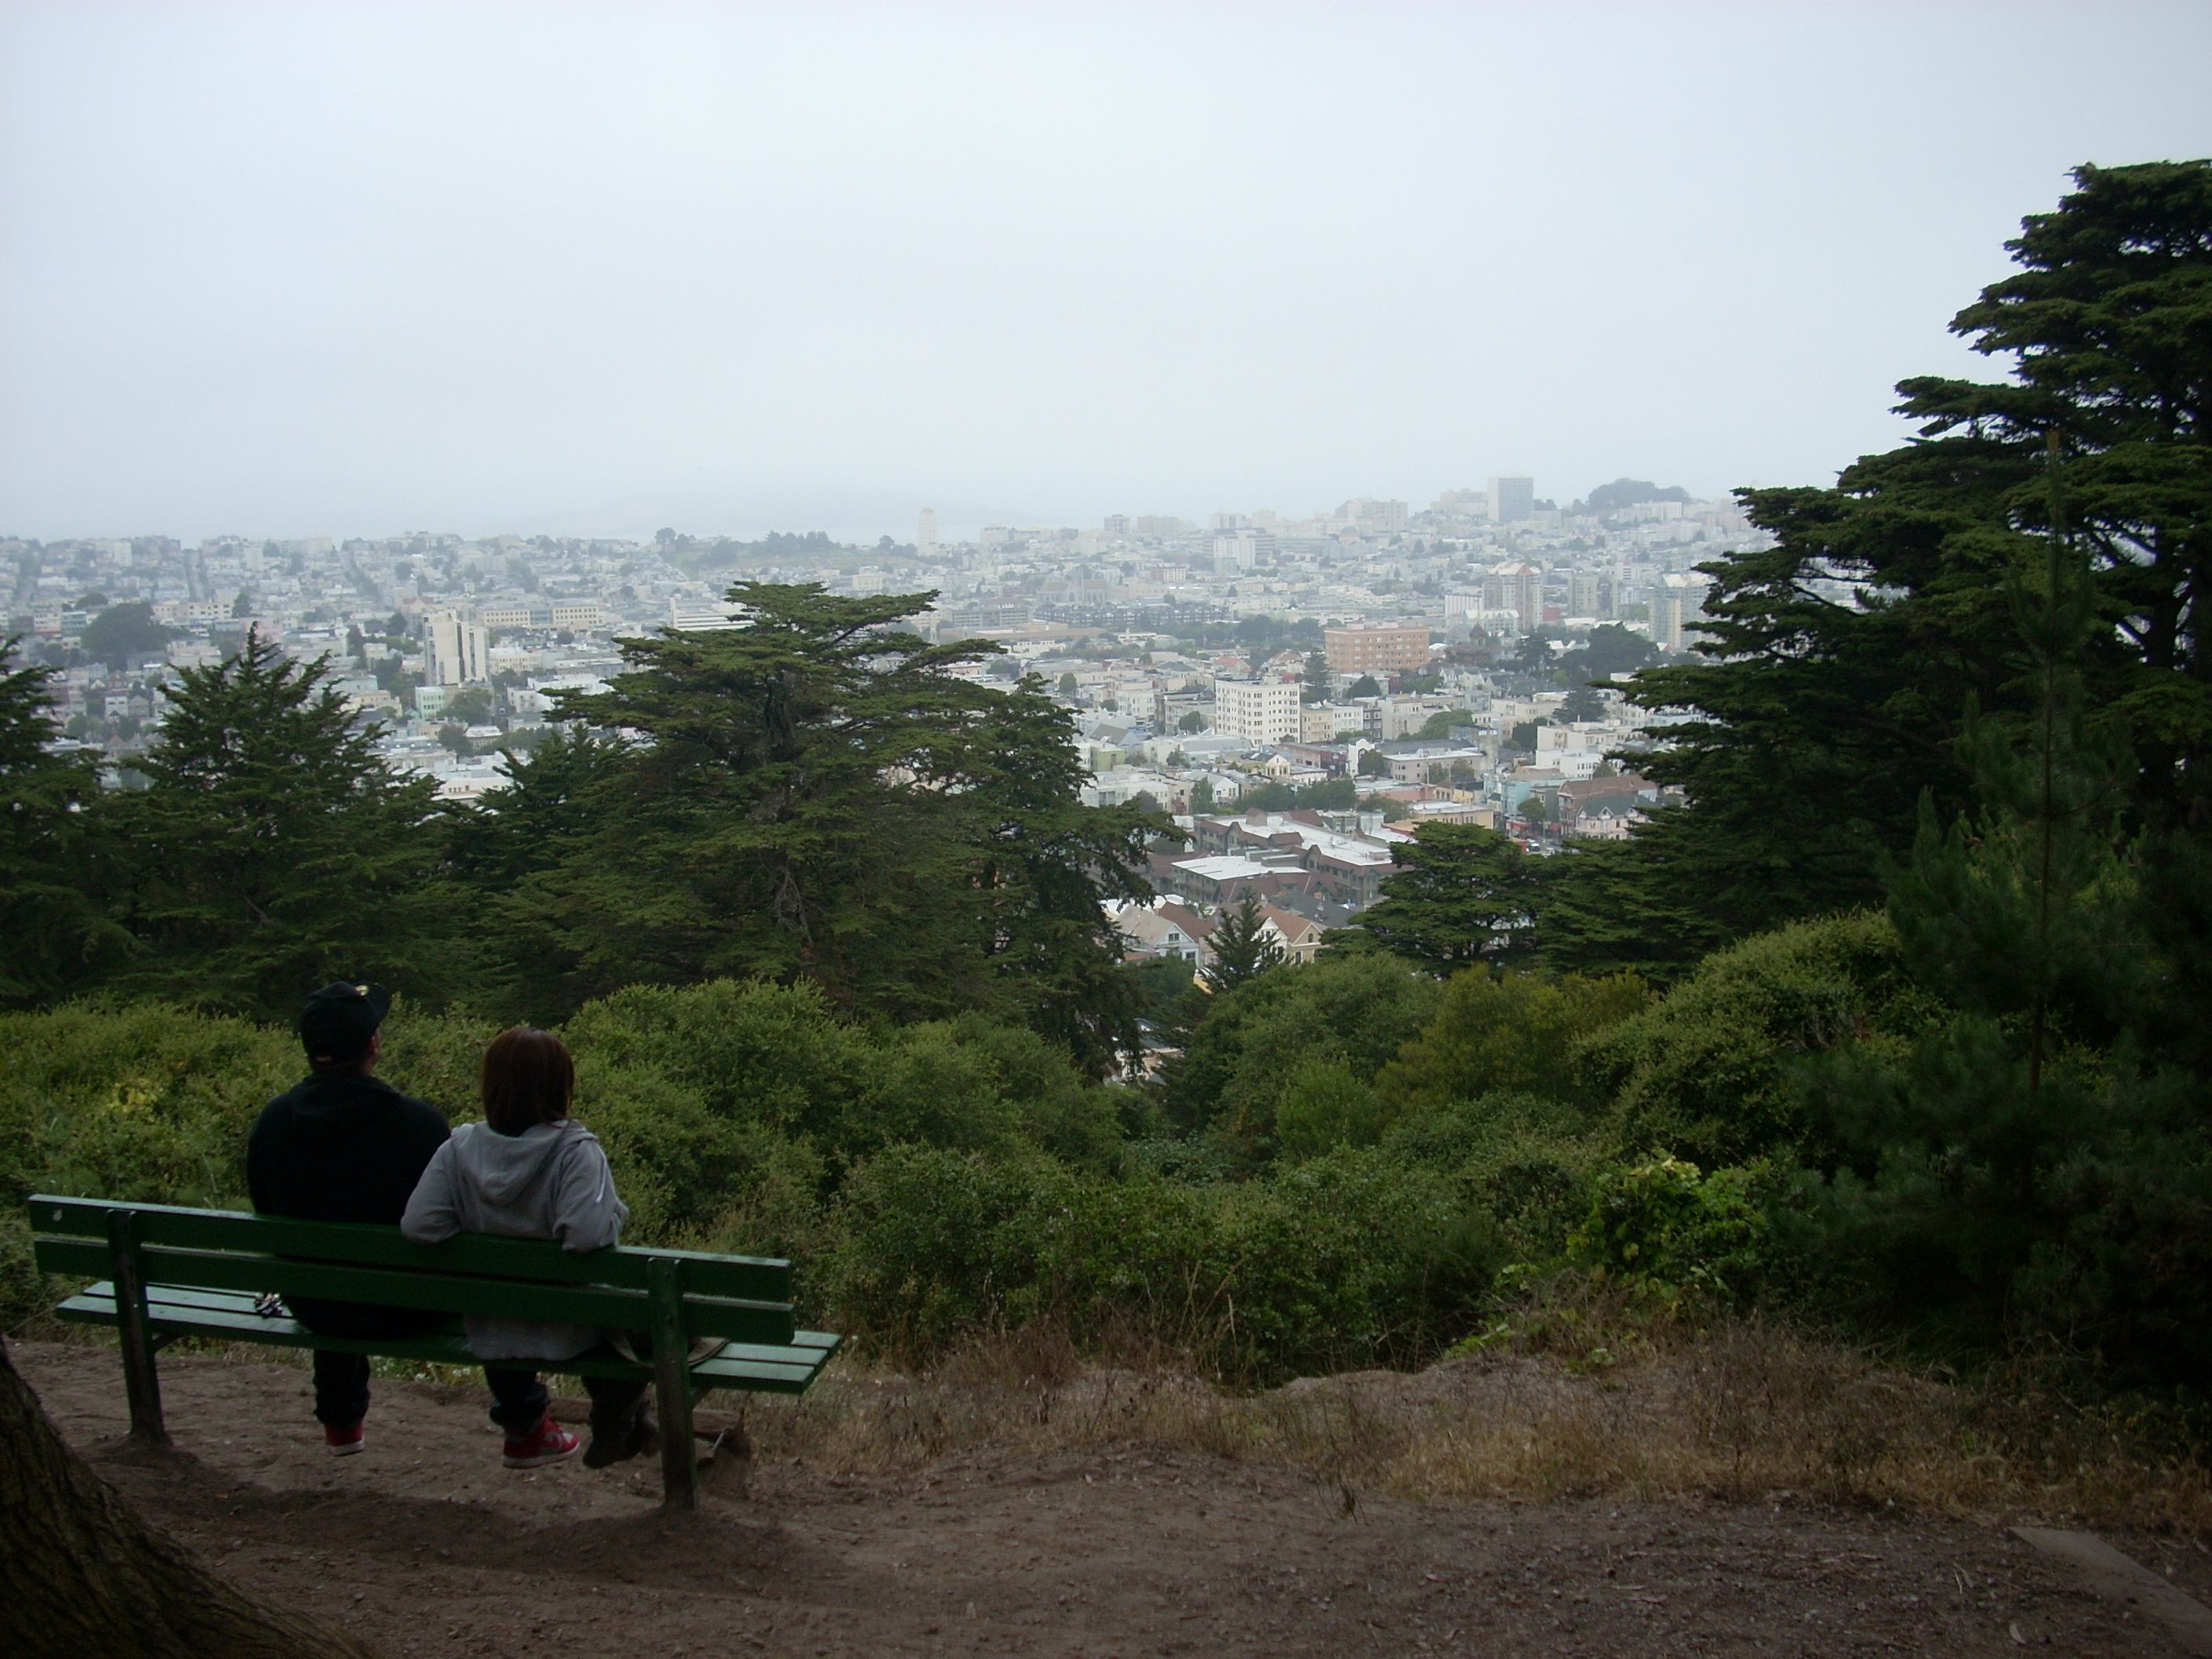 Buena Vista Park, San Francisco, California Great Views From That